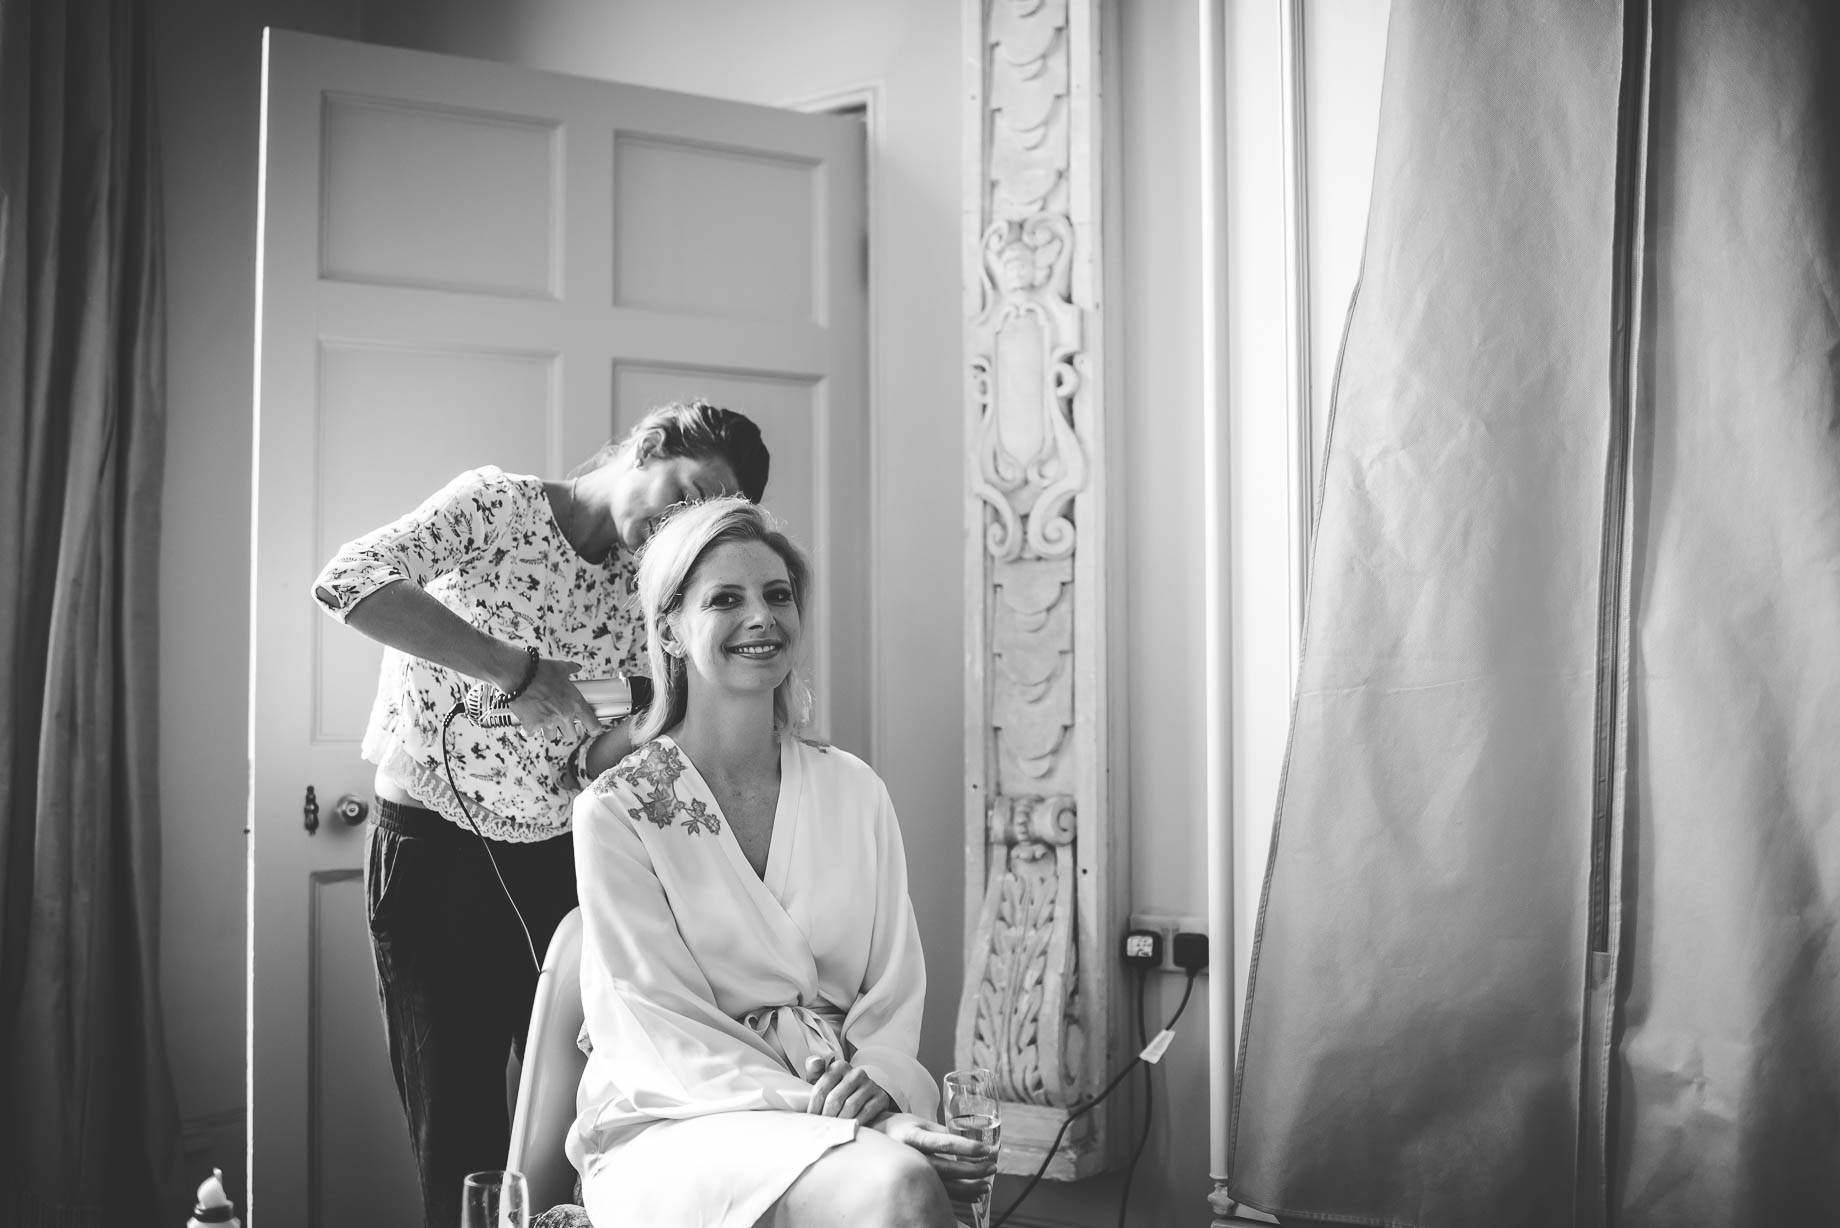 Aynhoe Park wedding photography - Guy Collier - Becky and Nick (29 of 233)